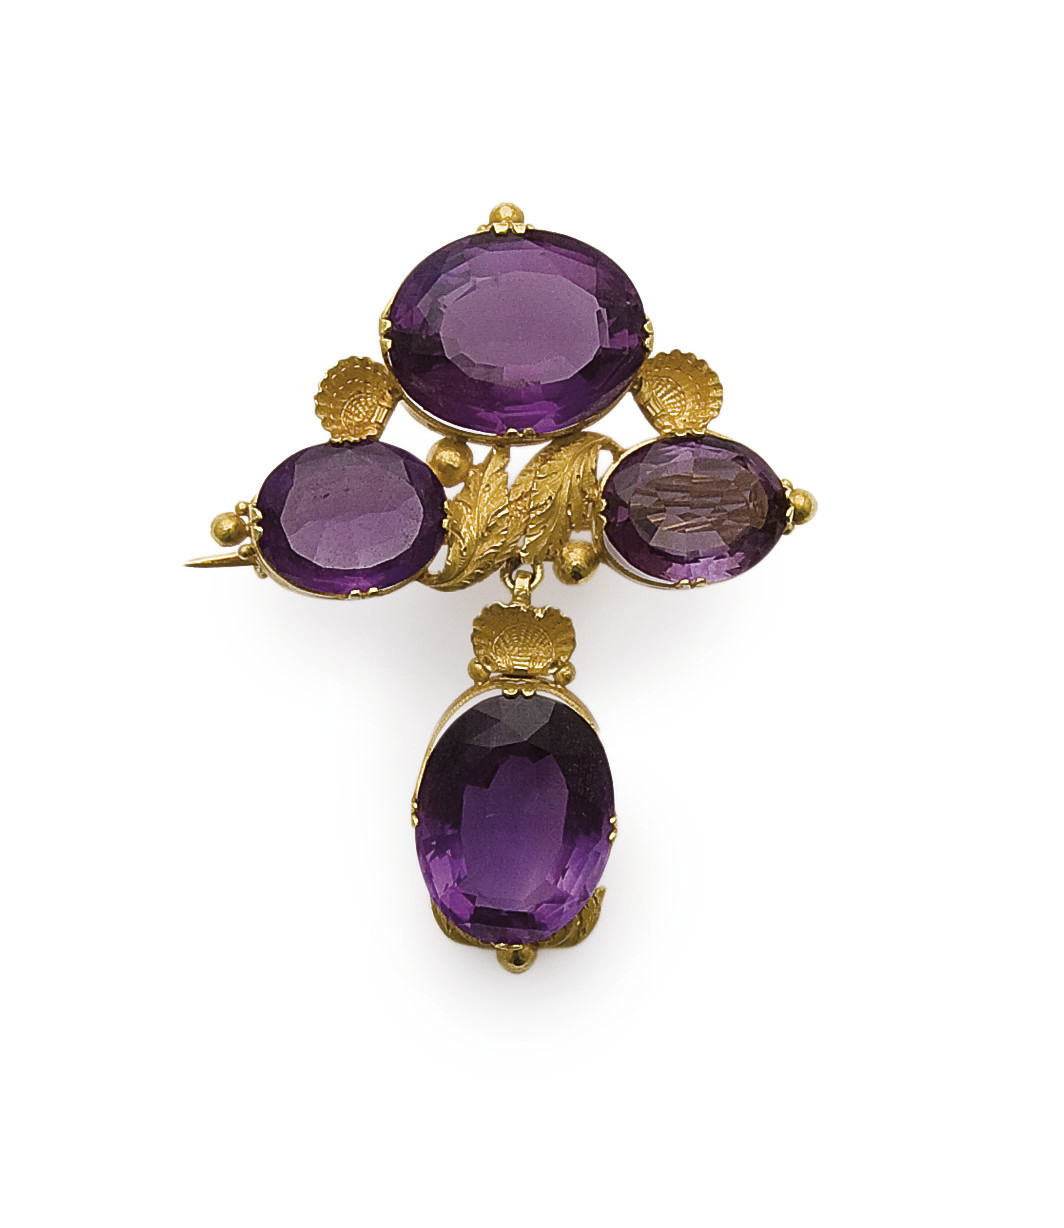 BROCHE EN OR ET AMETHYSTES